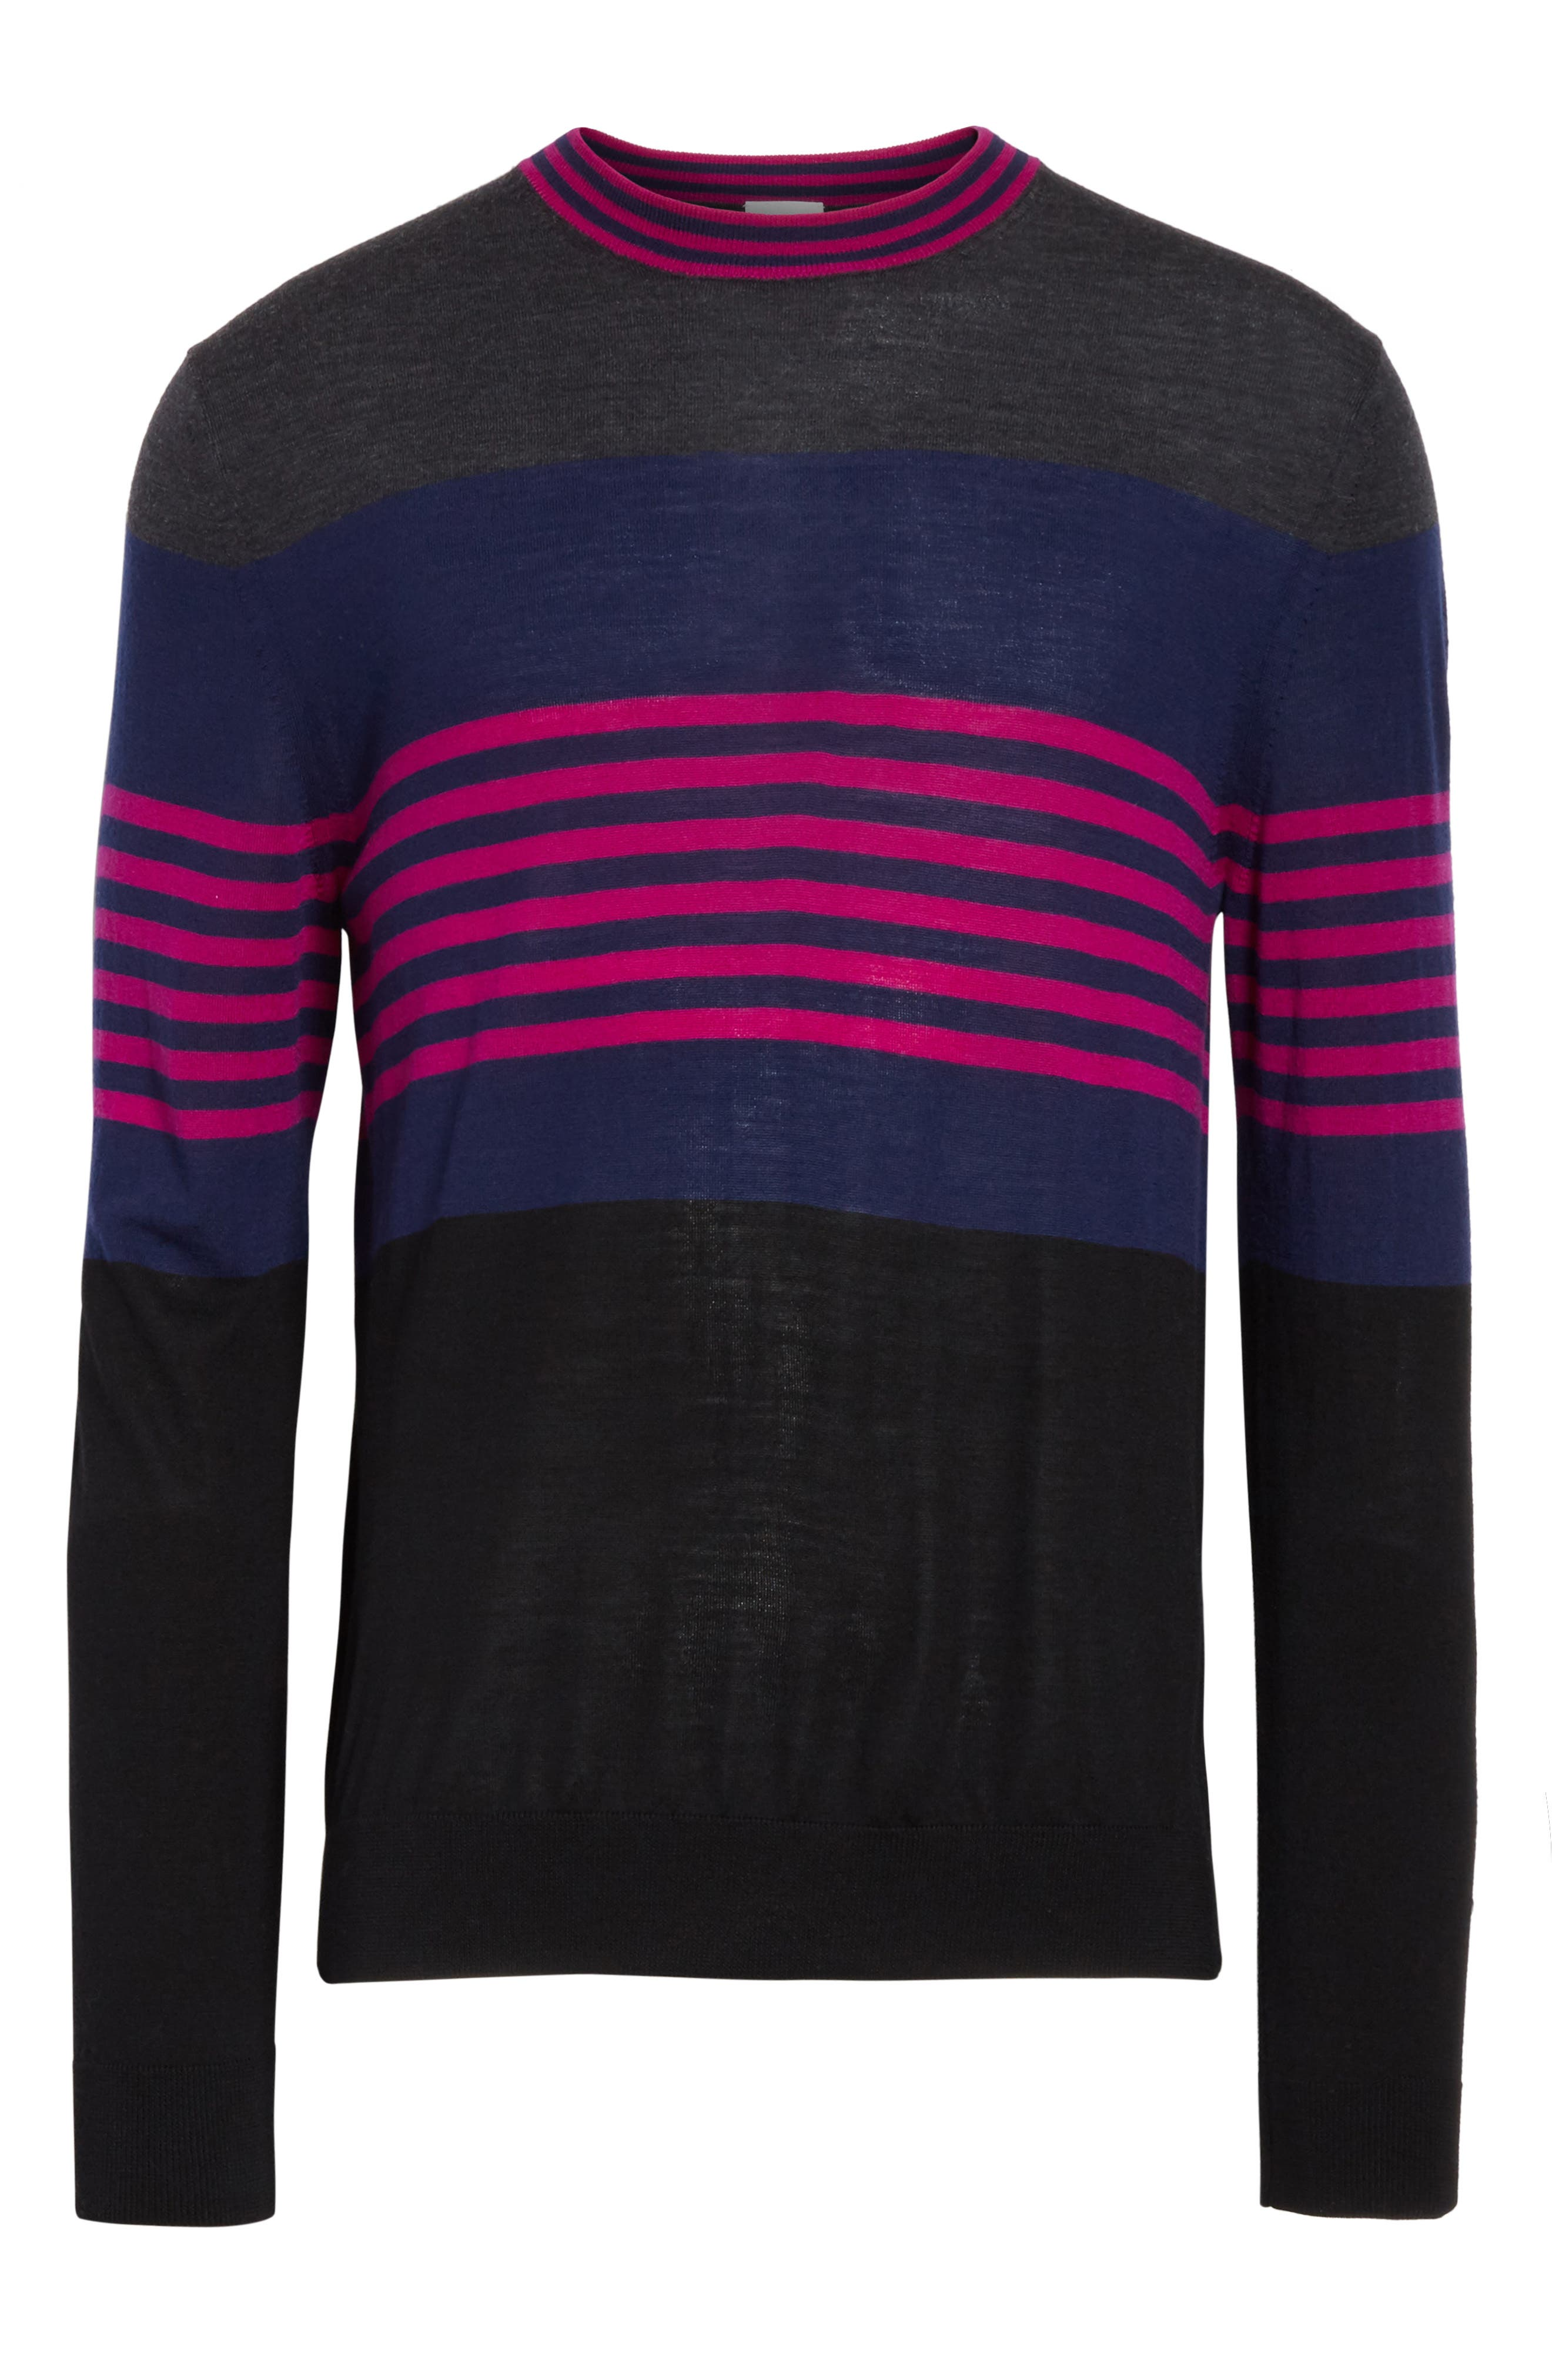 Stripe Merino Wool Crewneck Sweater,                             Alternate thumbnail 6, color,                             Grey Multi